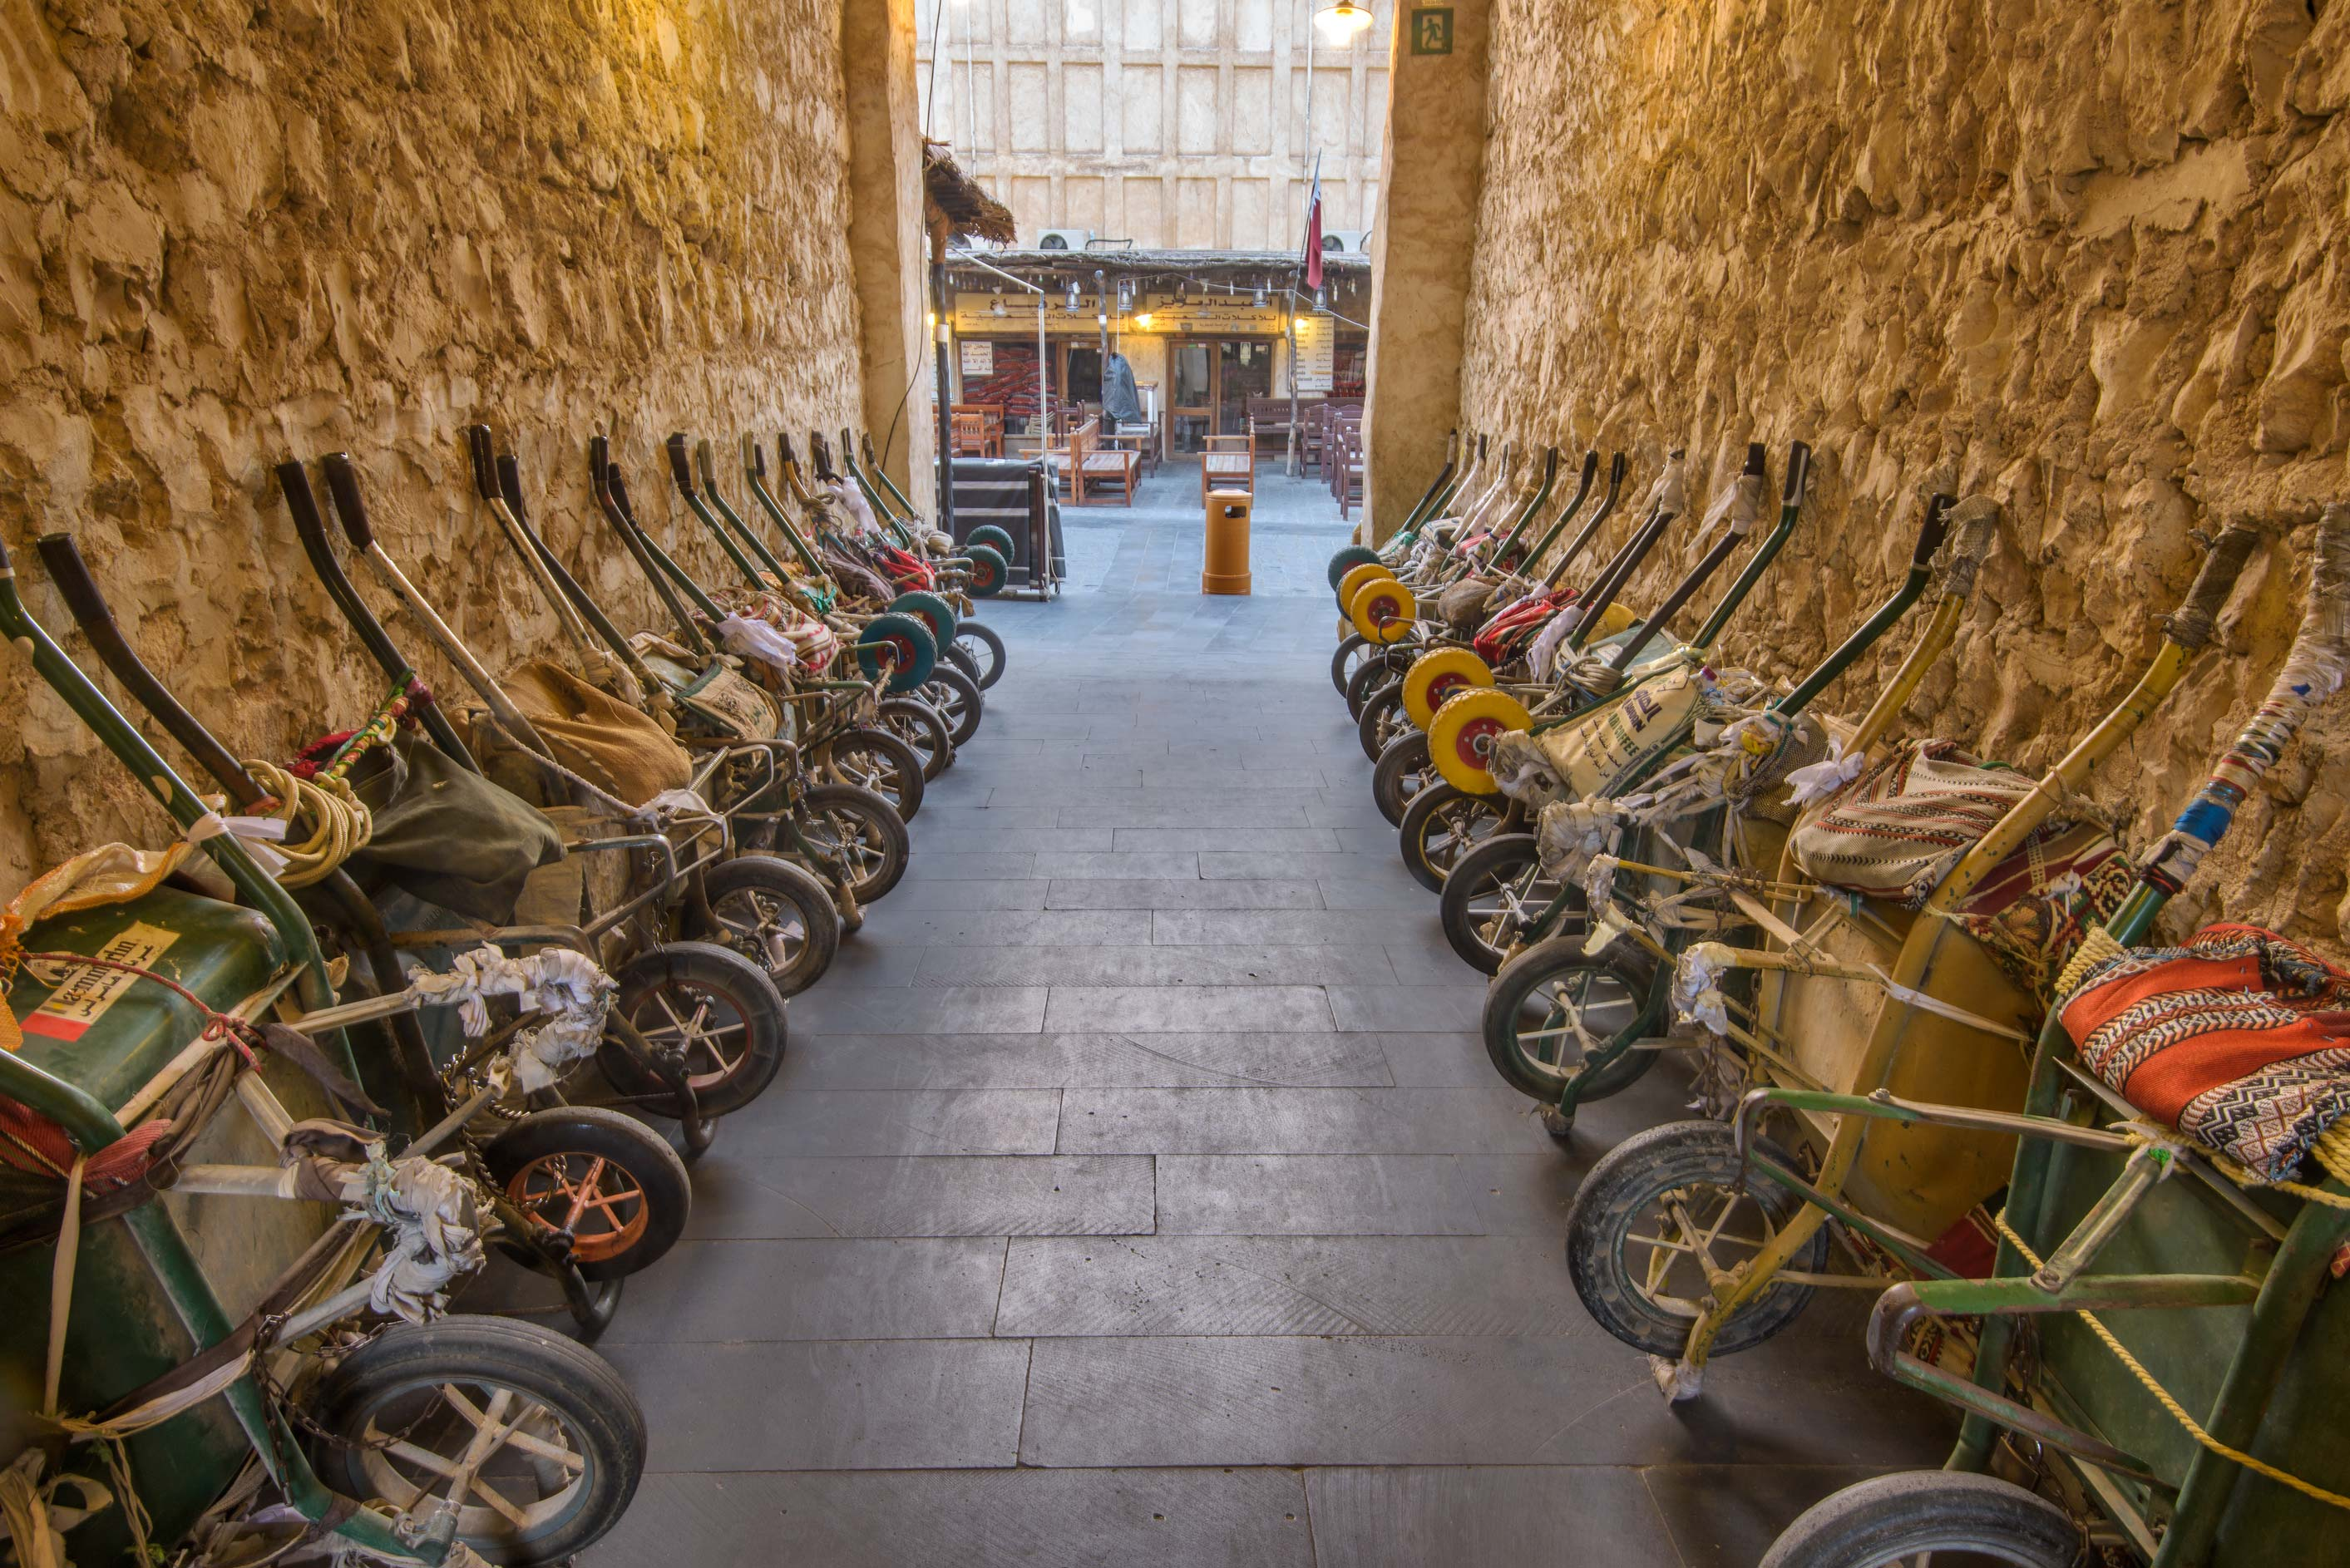 Rows of carts in Souq Waqif (Old Market). Doha, Qatar